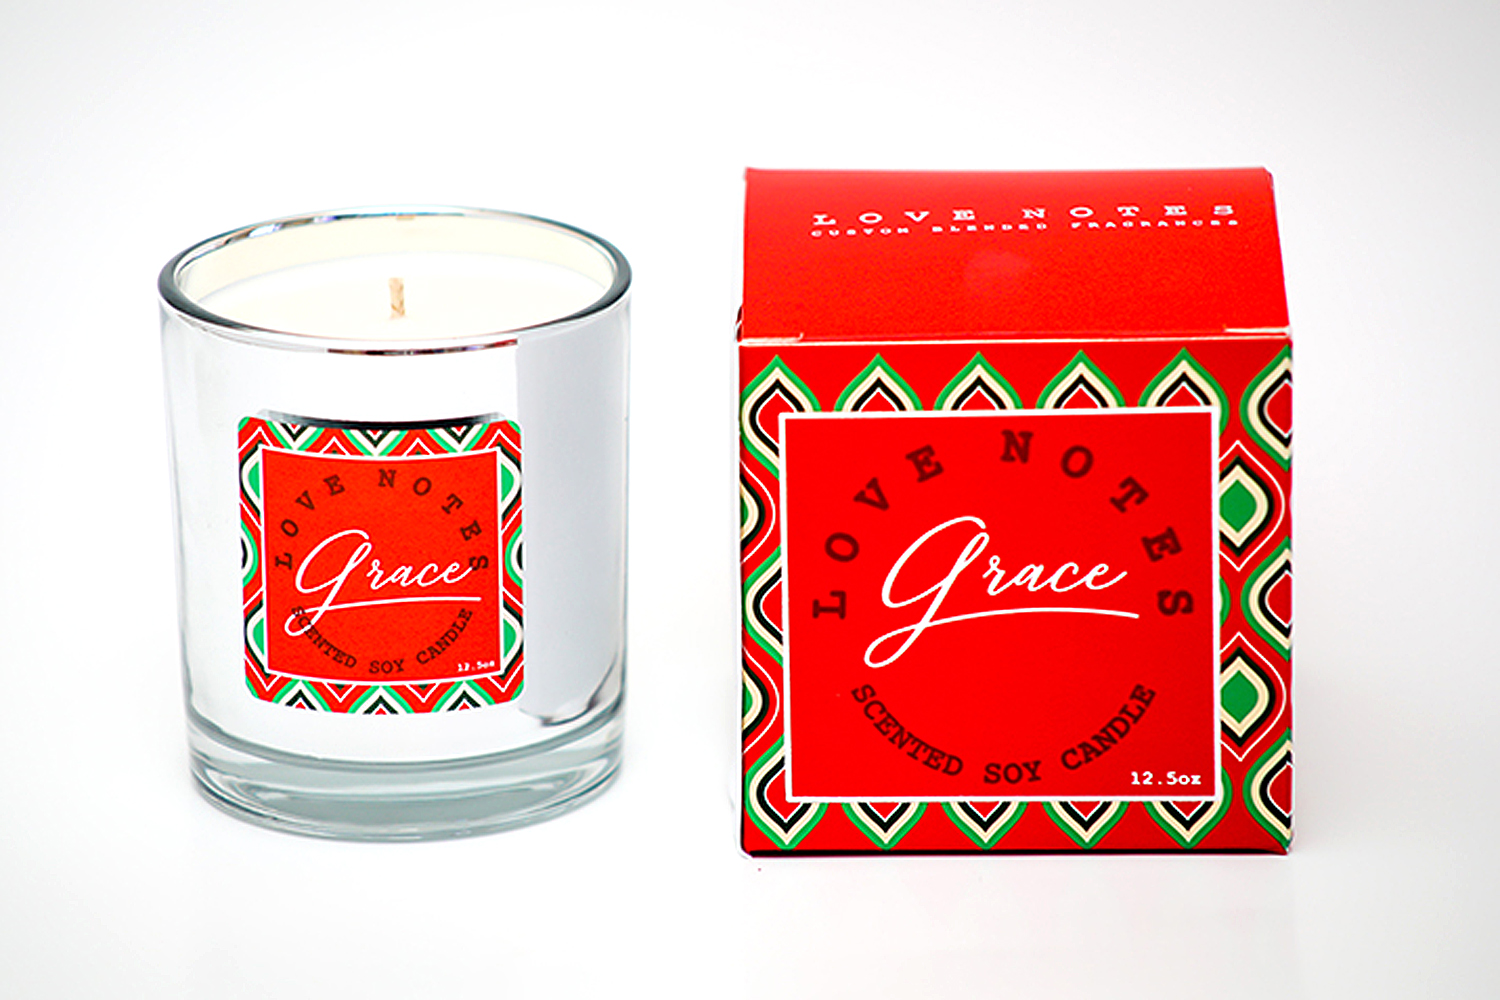 Grace – Chrome Glass Candle